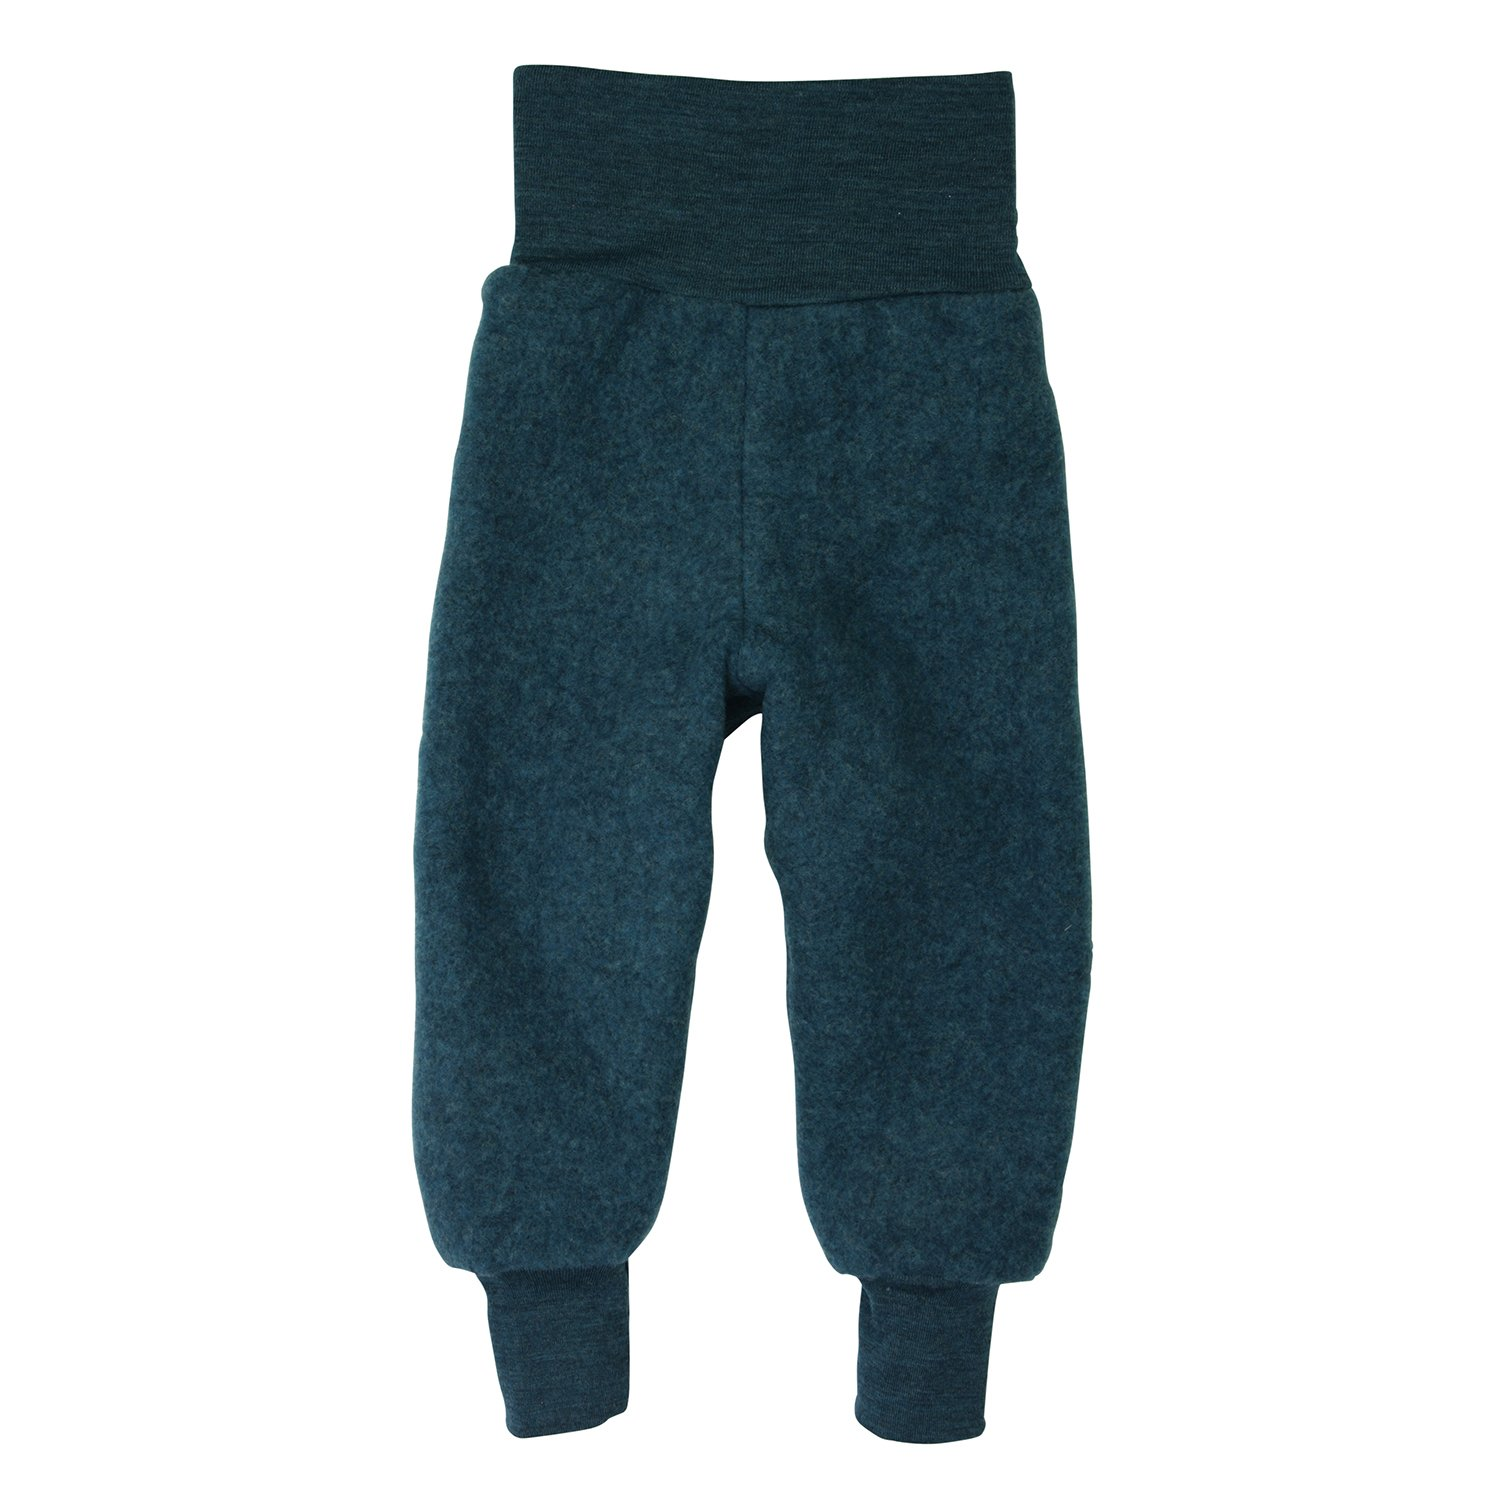 Organic Merino Wool Fleece Baby Trousers Blue Engel 573501